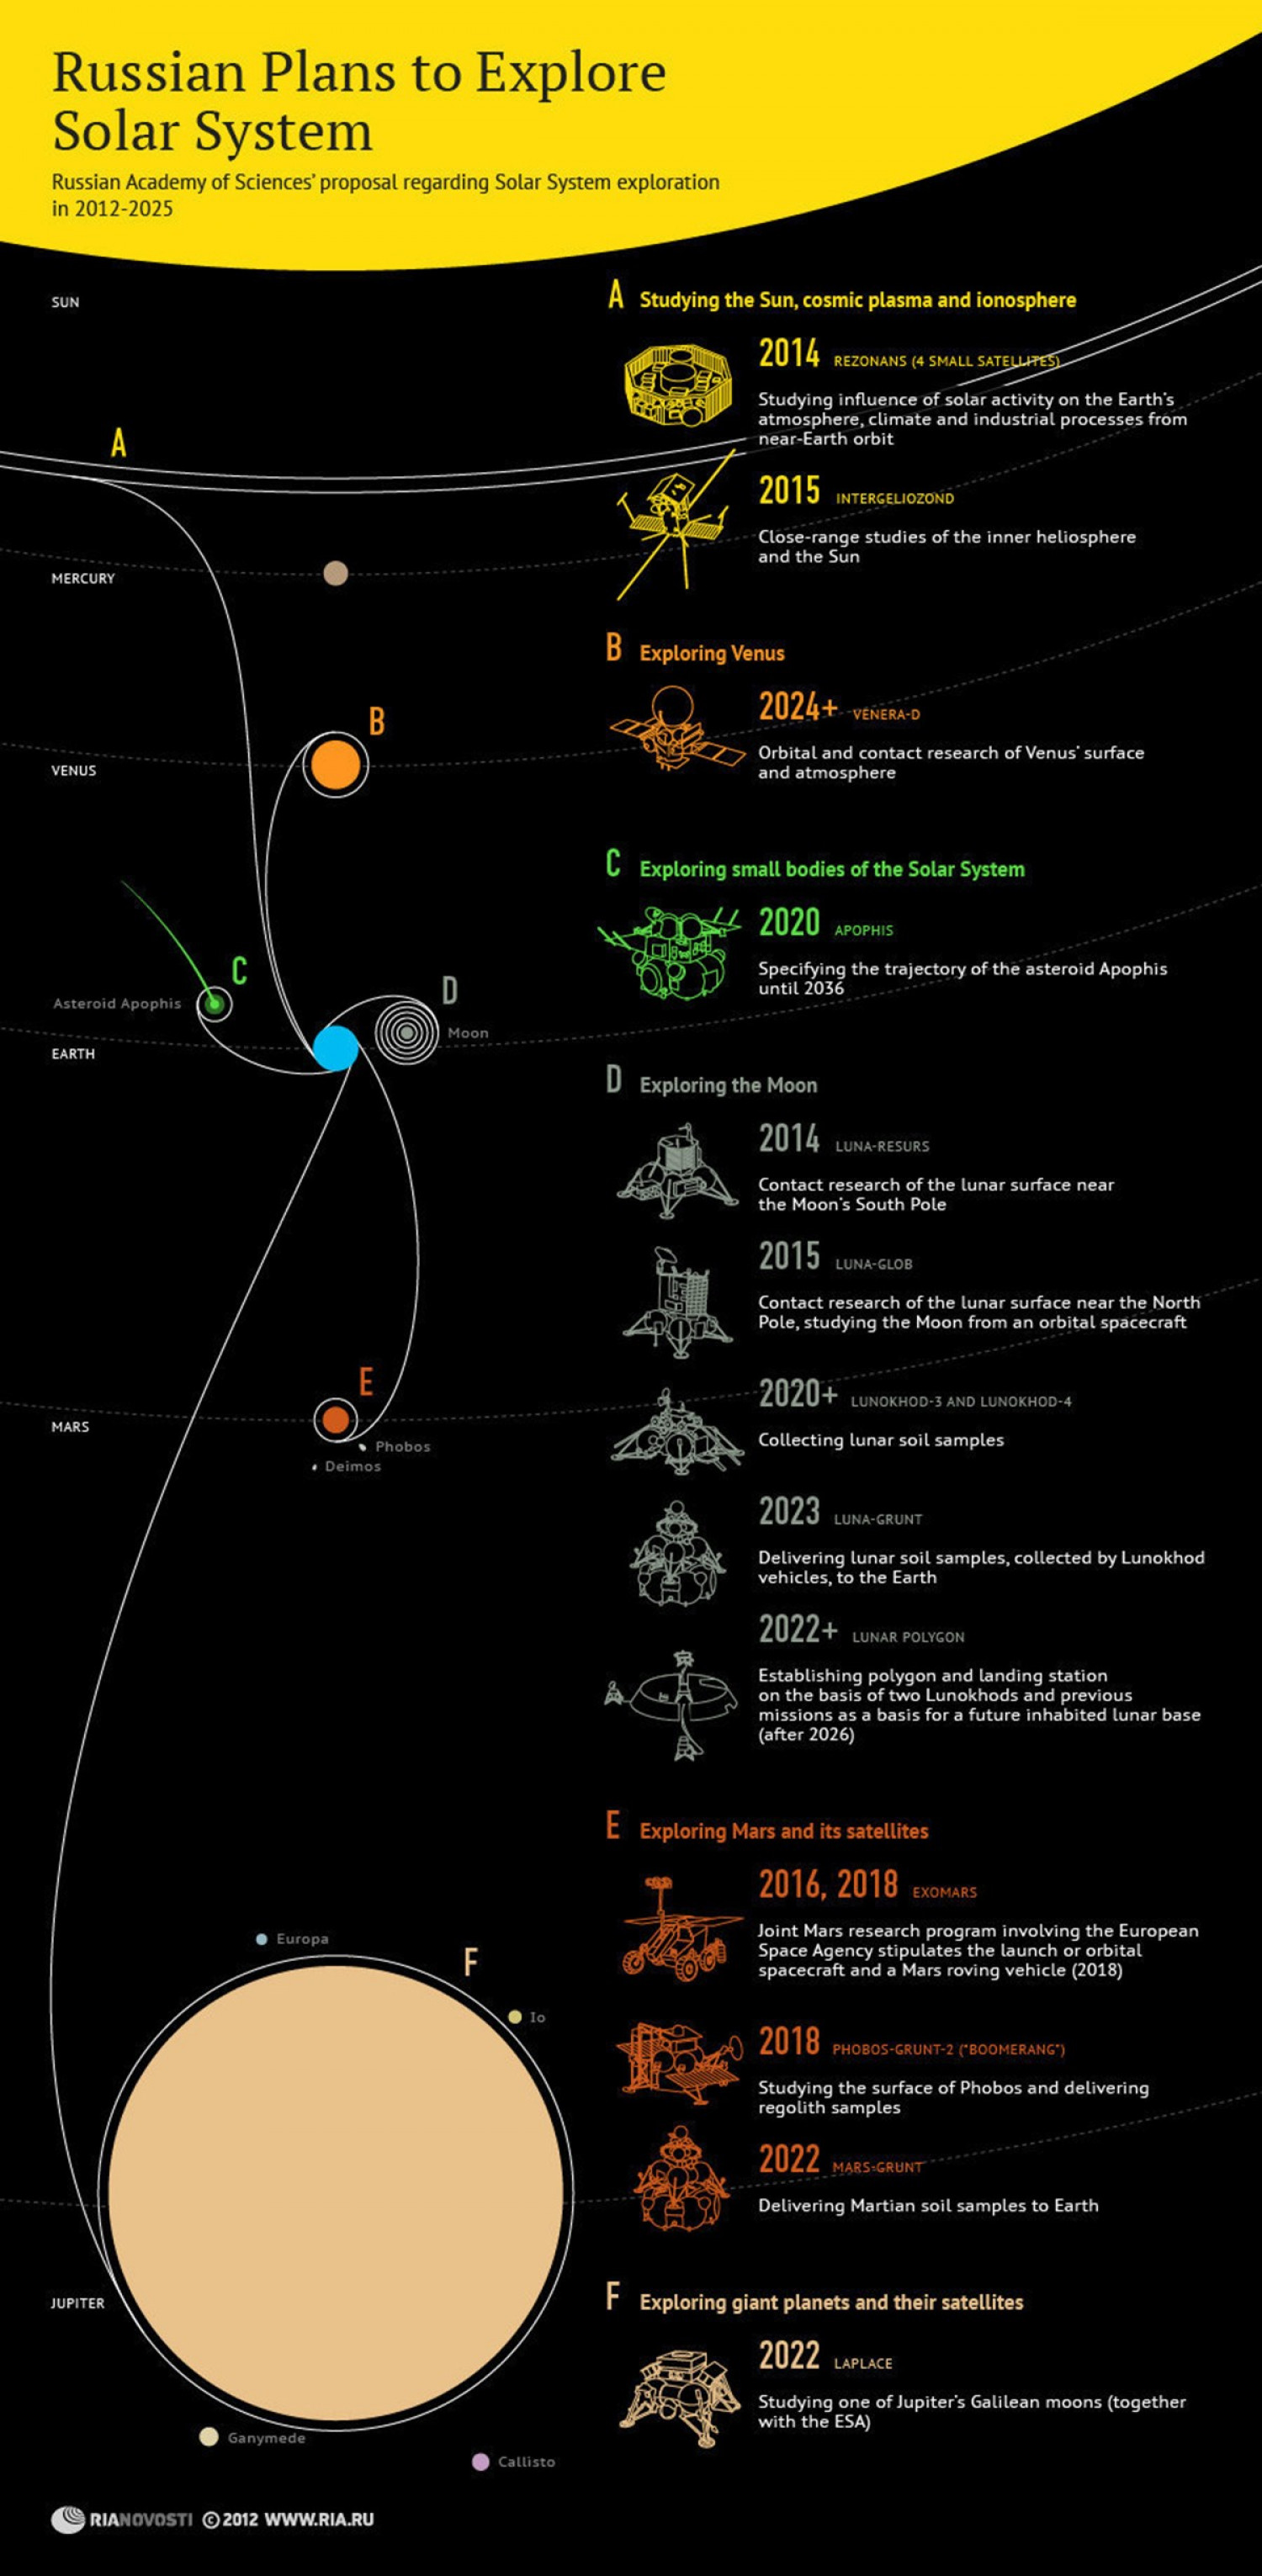 Russian Plans to Explore the Solar System Infographic